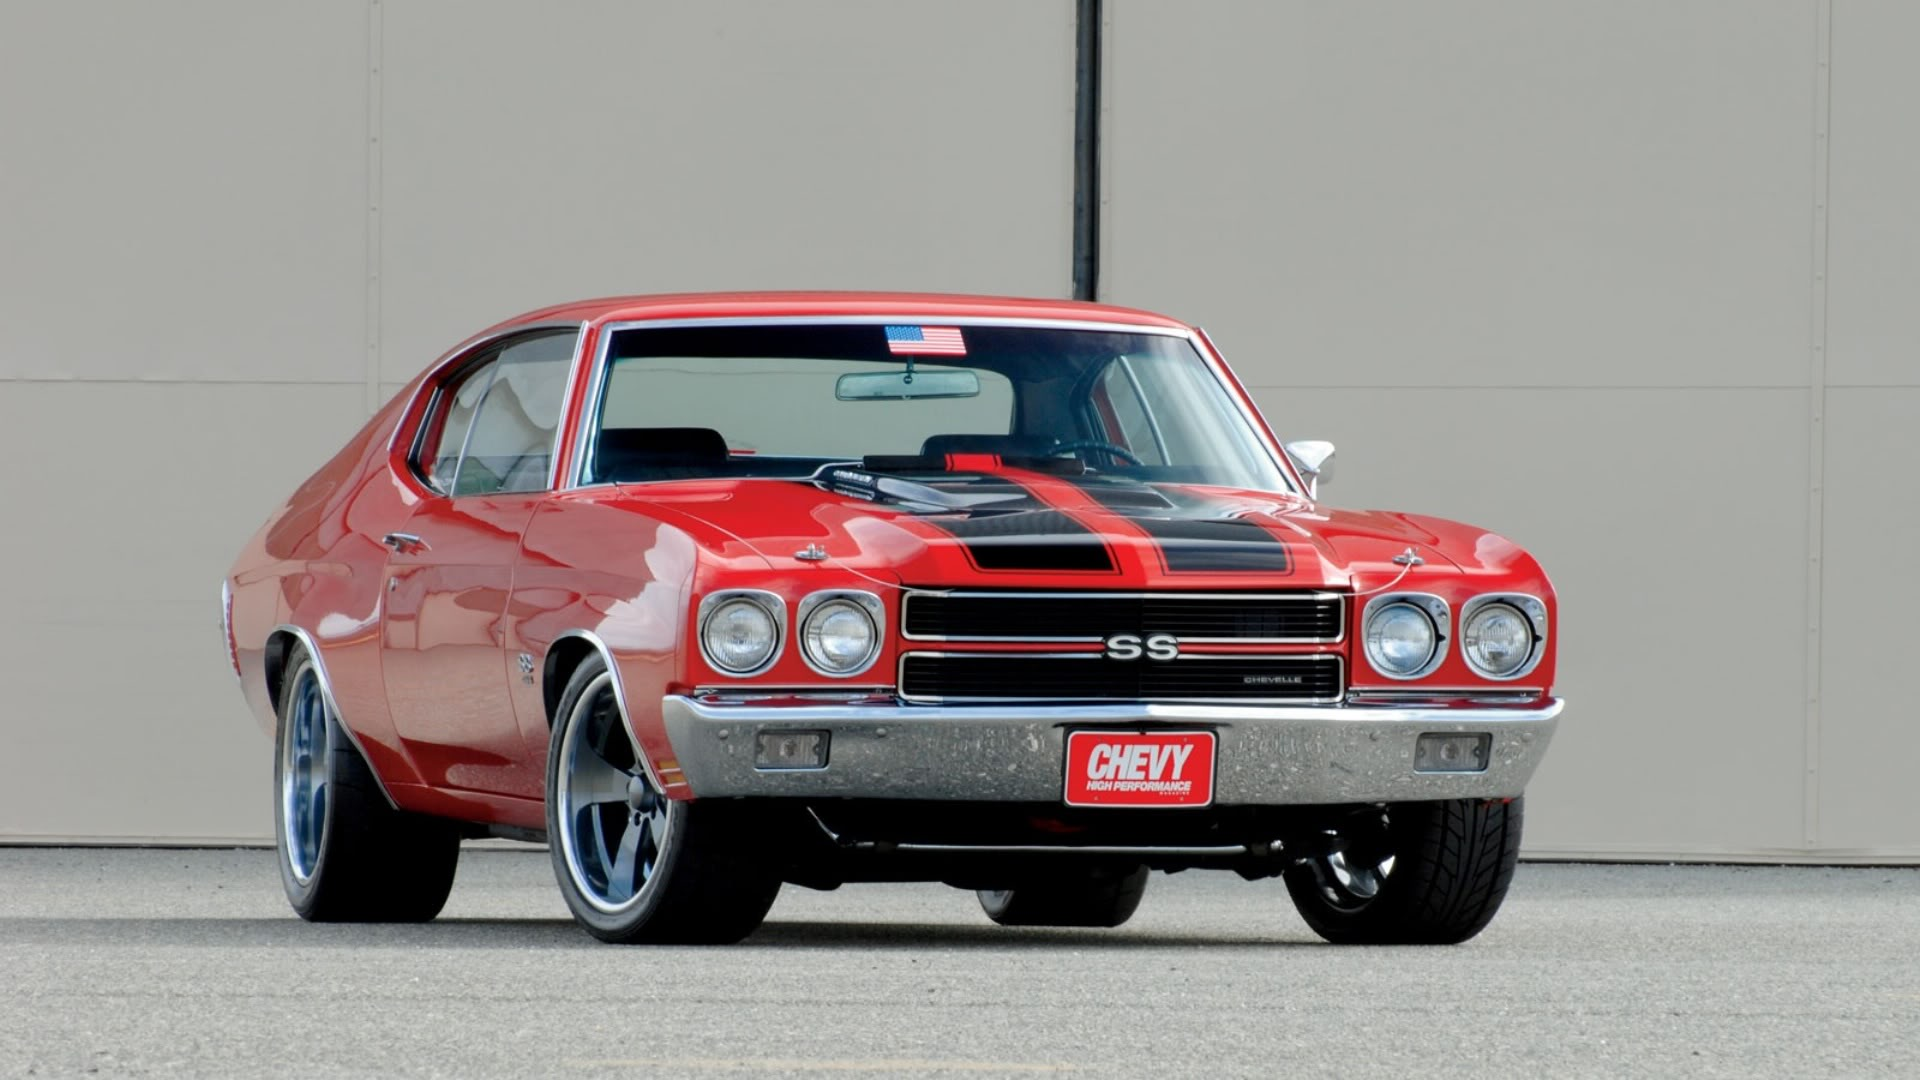 1970 Red Chevy Chevelle SS 454 wallpaper 1920x1080 37008 1920x1080